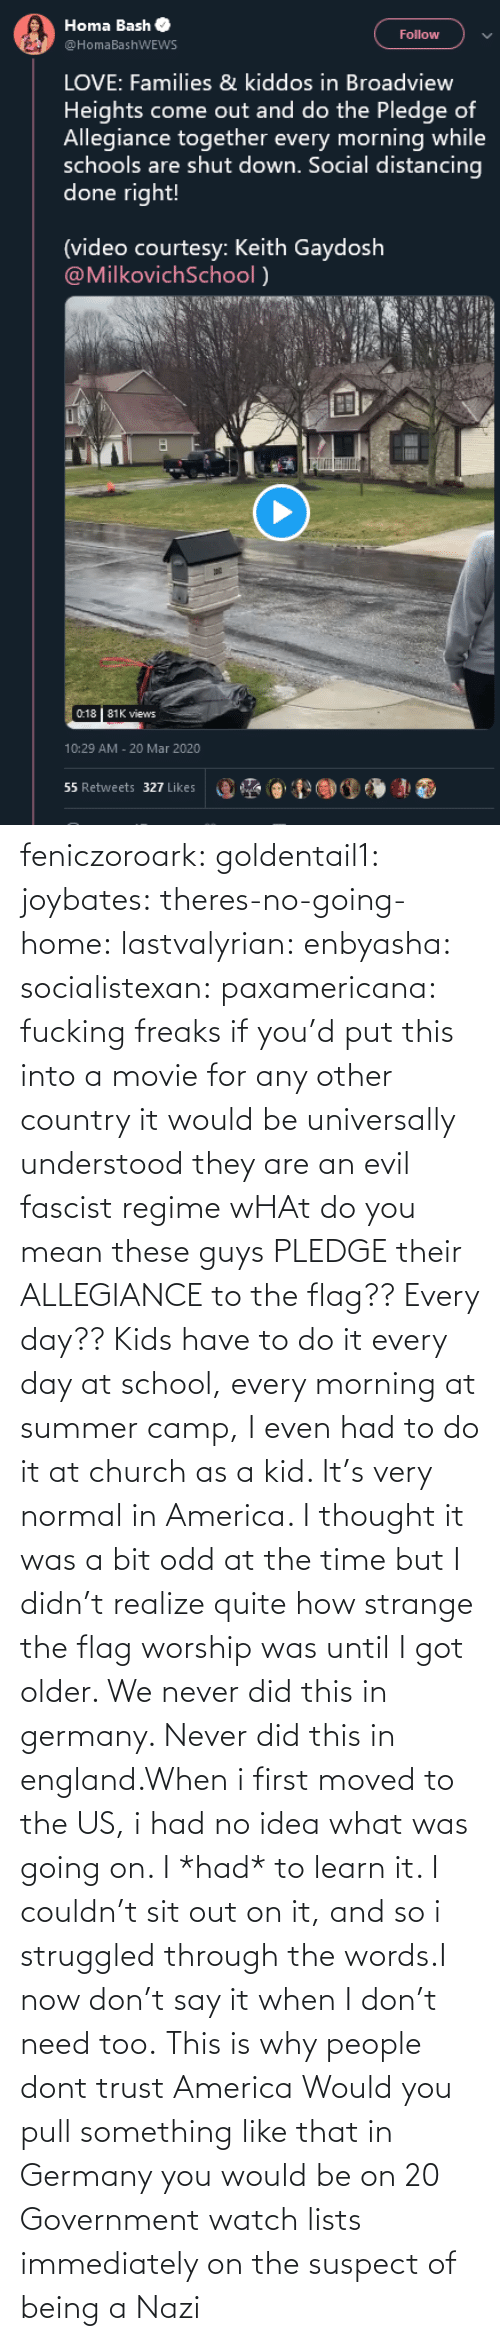 The Us: feniczoroark:  goldentail1:  joybates:  theres-no-going-home:  lastvalyrian:  enbyasha:  socialistexan:  paxamericana: fucking freaks       if you'd put this into a movie for any other country it would be universally understood they are an evil fascist regime    wHAt do you mean these guys PLEDGE their ALLEGIANCE to the flag?? Every day??   Kids have to do it every day at school, every morning at summer camp, I even had to do it at church as a kid. It's very normal in America. I thought it was a bit odd at the time but I didn't realize quite how strange the flag worship was until I got older.    We never did this in germany. Never did this in england.When i first moved to the US, i had no idea what was going on. I *had* to learn it. I couldn't sit out on it, and so i struggled through the words.I now don't say it when I don't need too.   This is why people dont trust America    Would you pull something like that in Germany you would be on 20 Government watch lists immediately on the suspect of being a Nazi